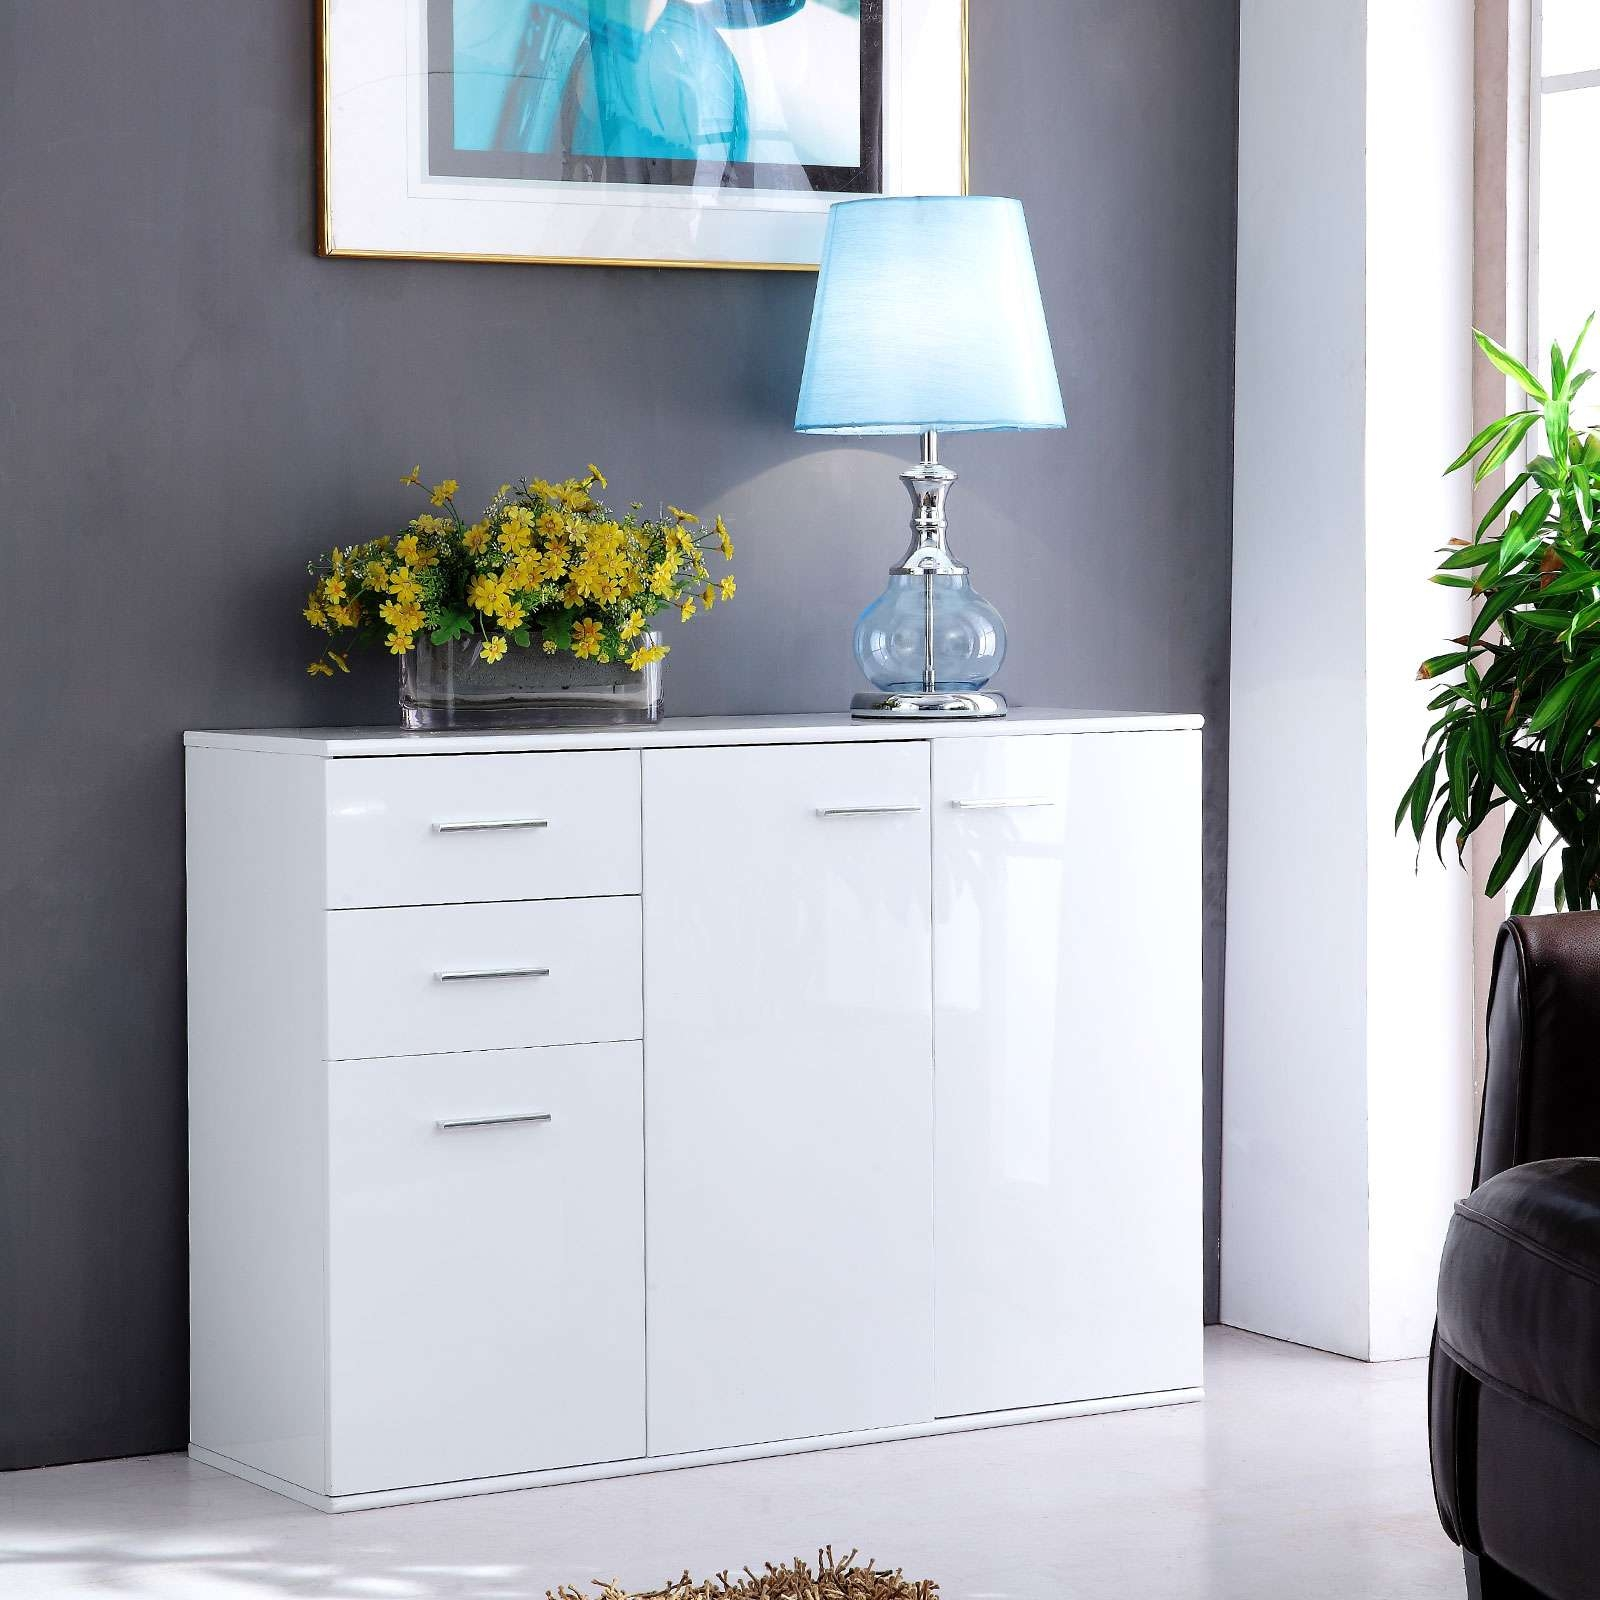 Sideboard Buffet Cabinet High Gloss White Storage Cupboard Unit 2 Intended For White Sideboards Cabinets (View 14 of 20)